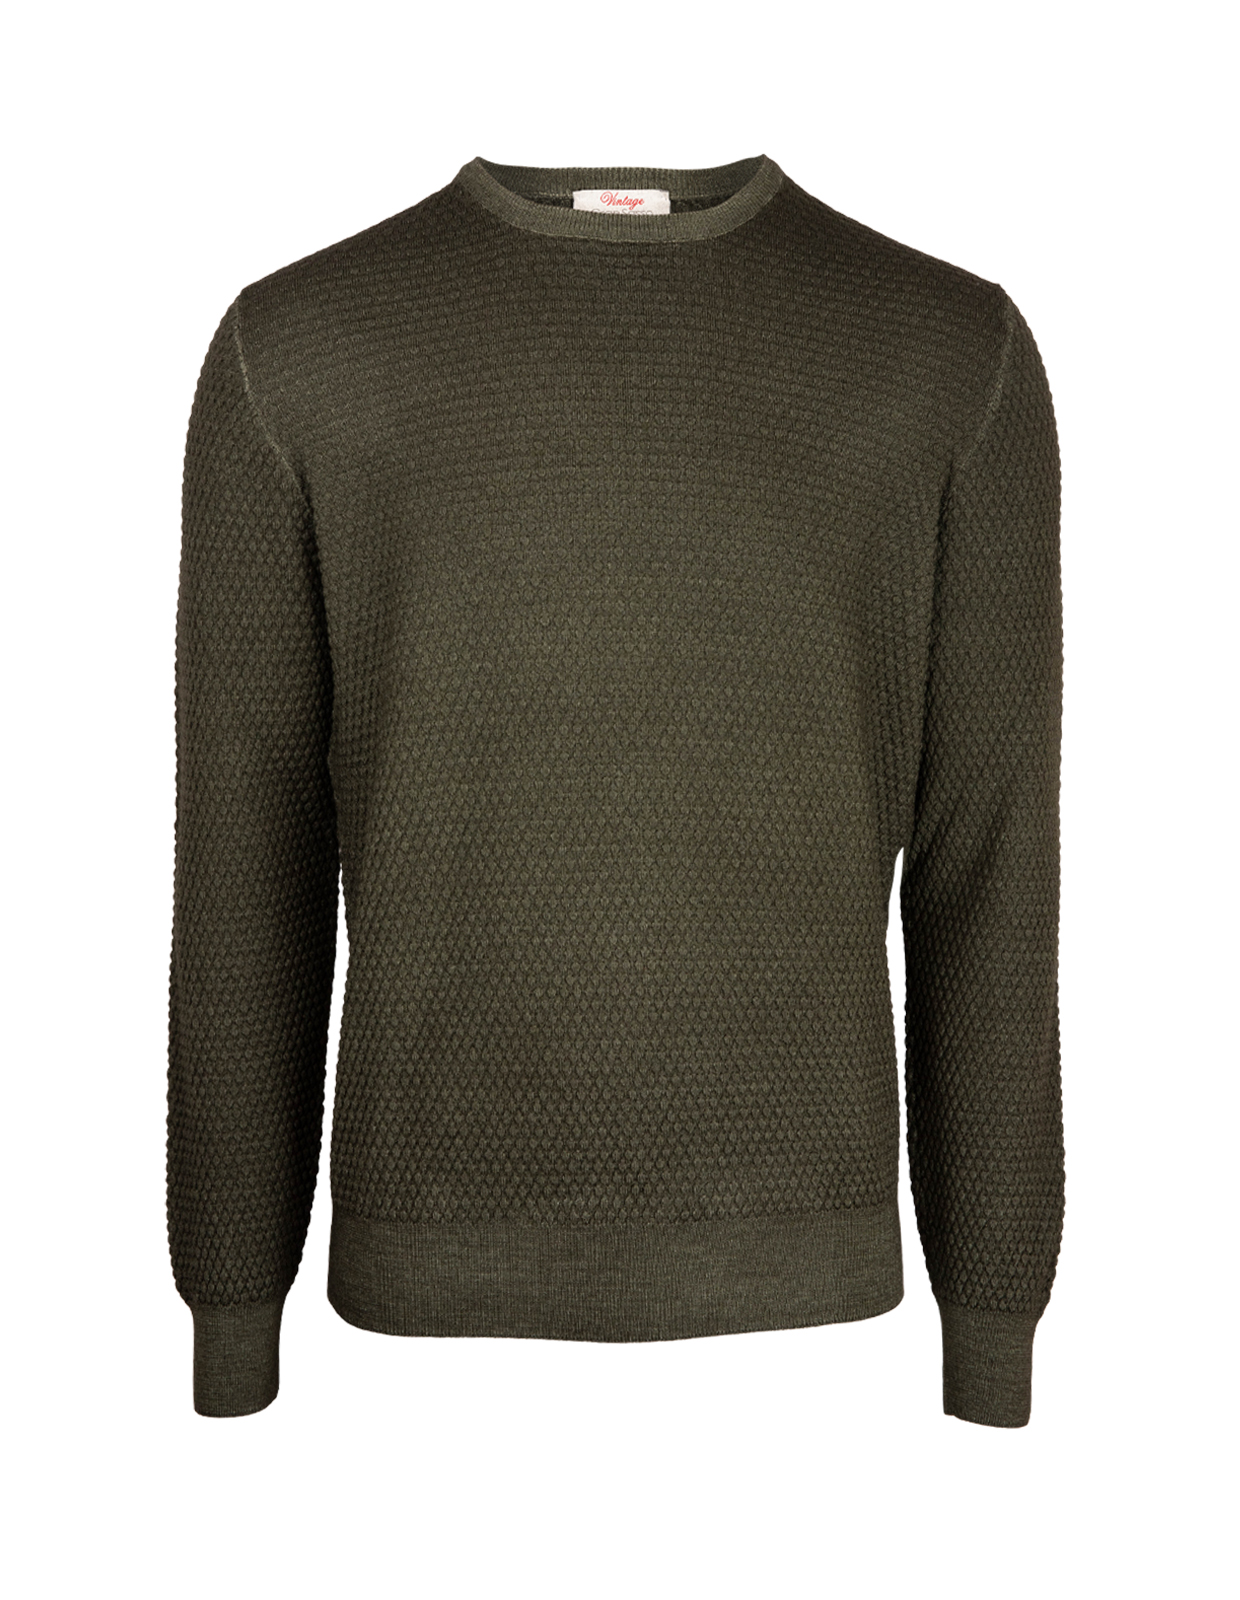 Knitted Texture Vintage Merino Crew Neck Green